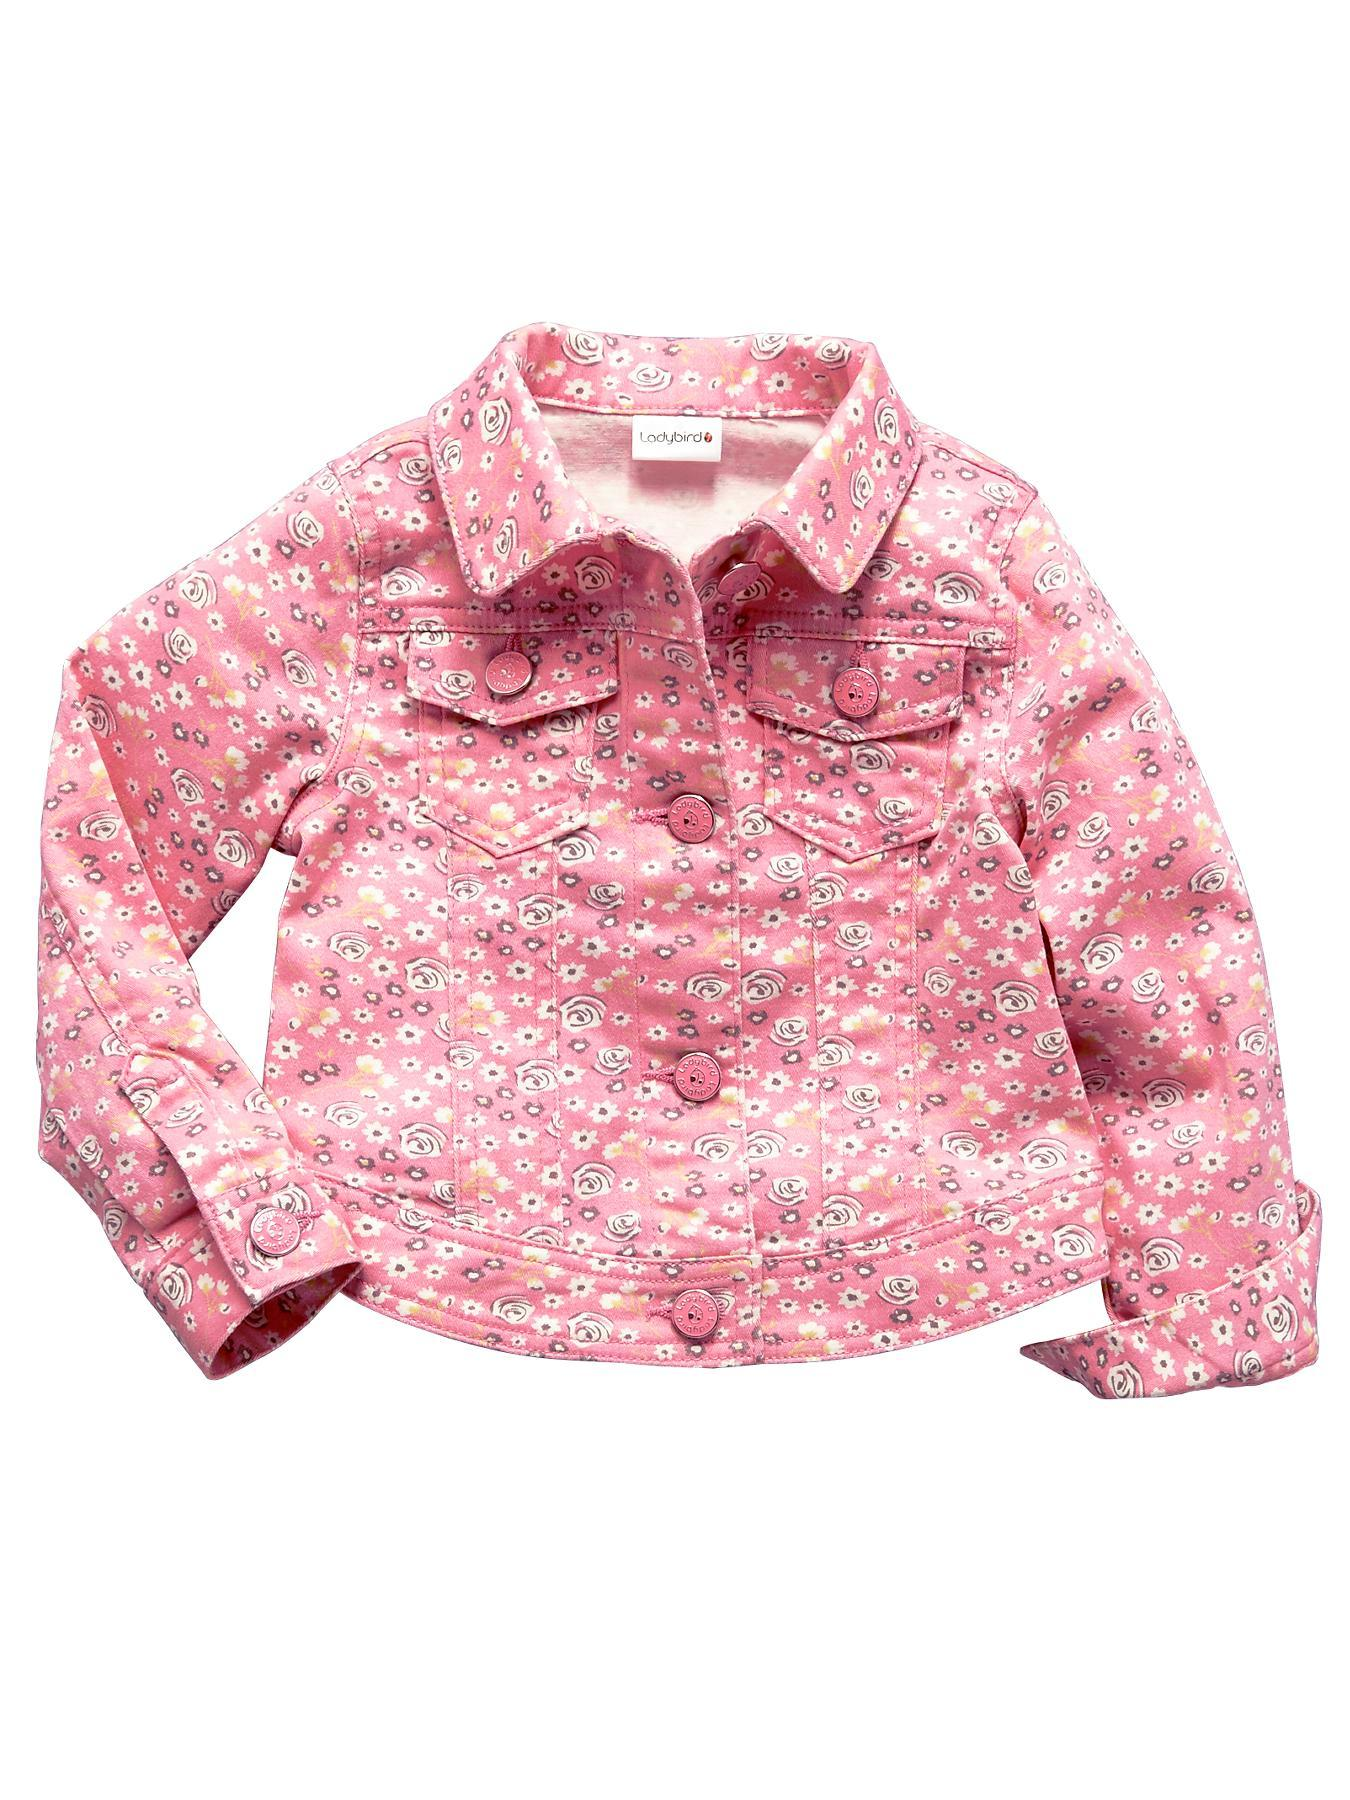 Girls Floral Printed Denim Jacket.